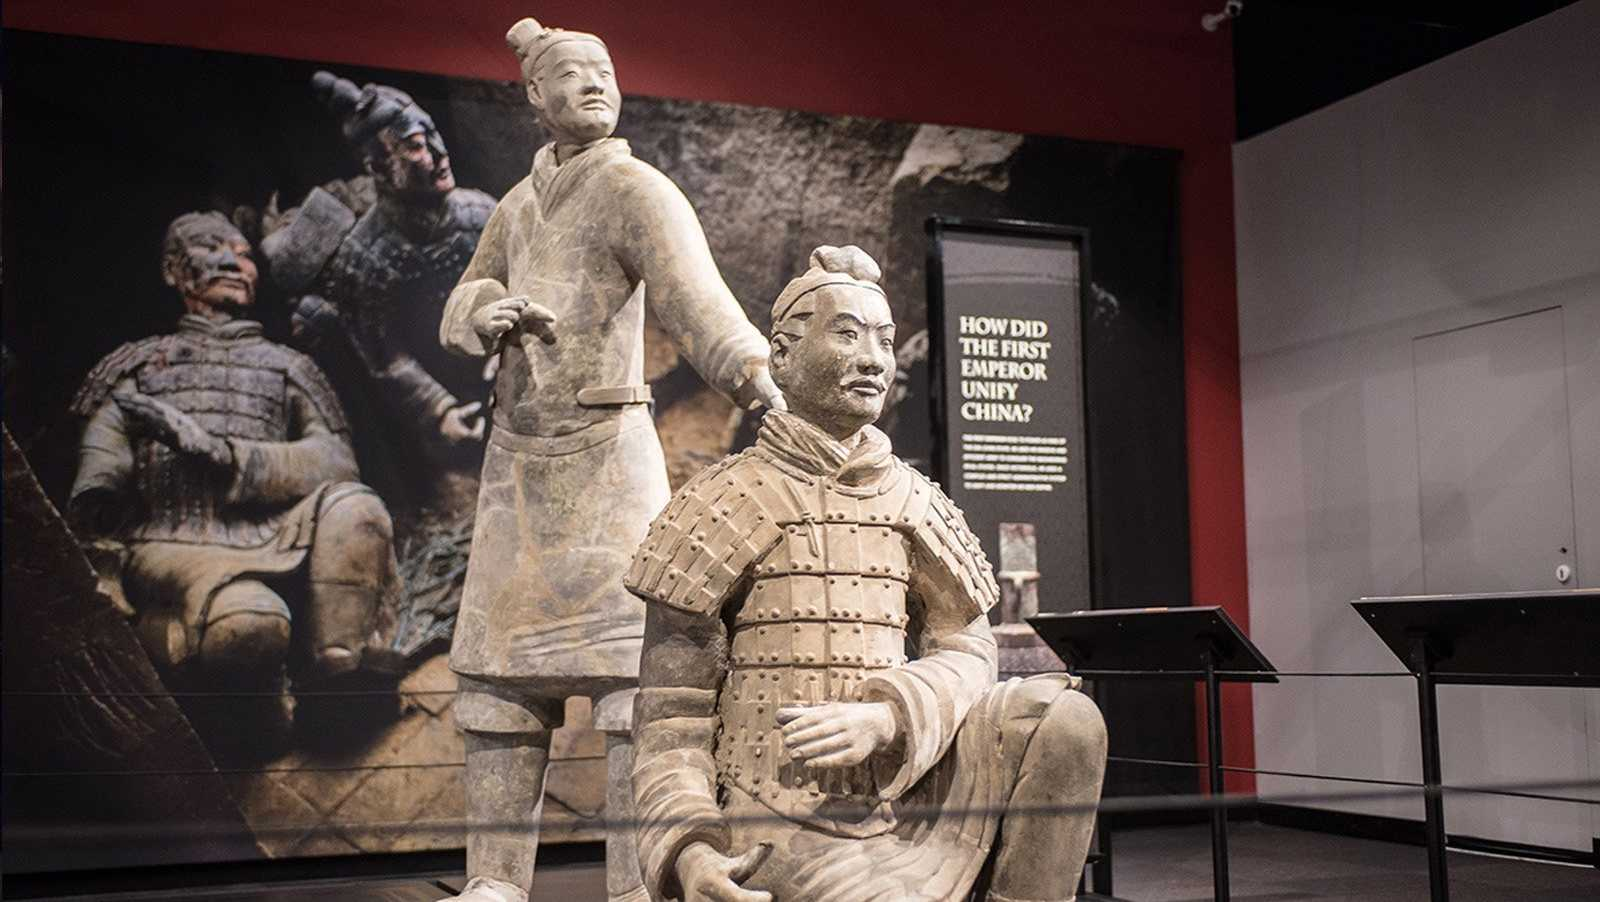 Terra-cotta warriors on display at Philadelphia's Franklin Institute.